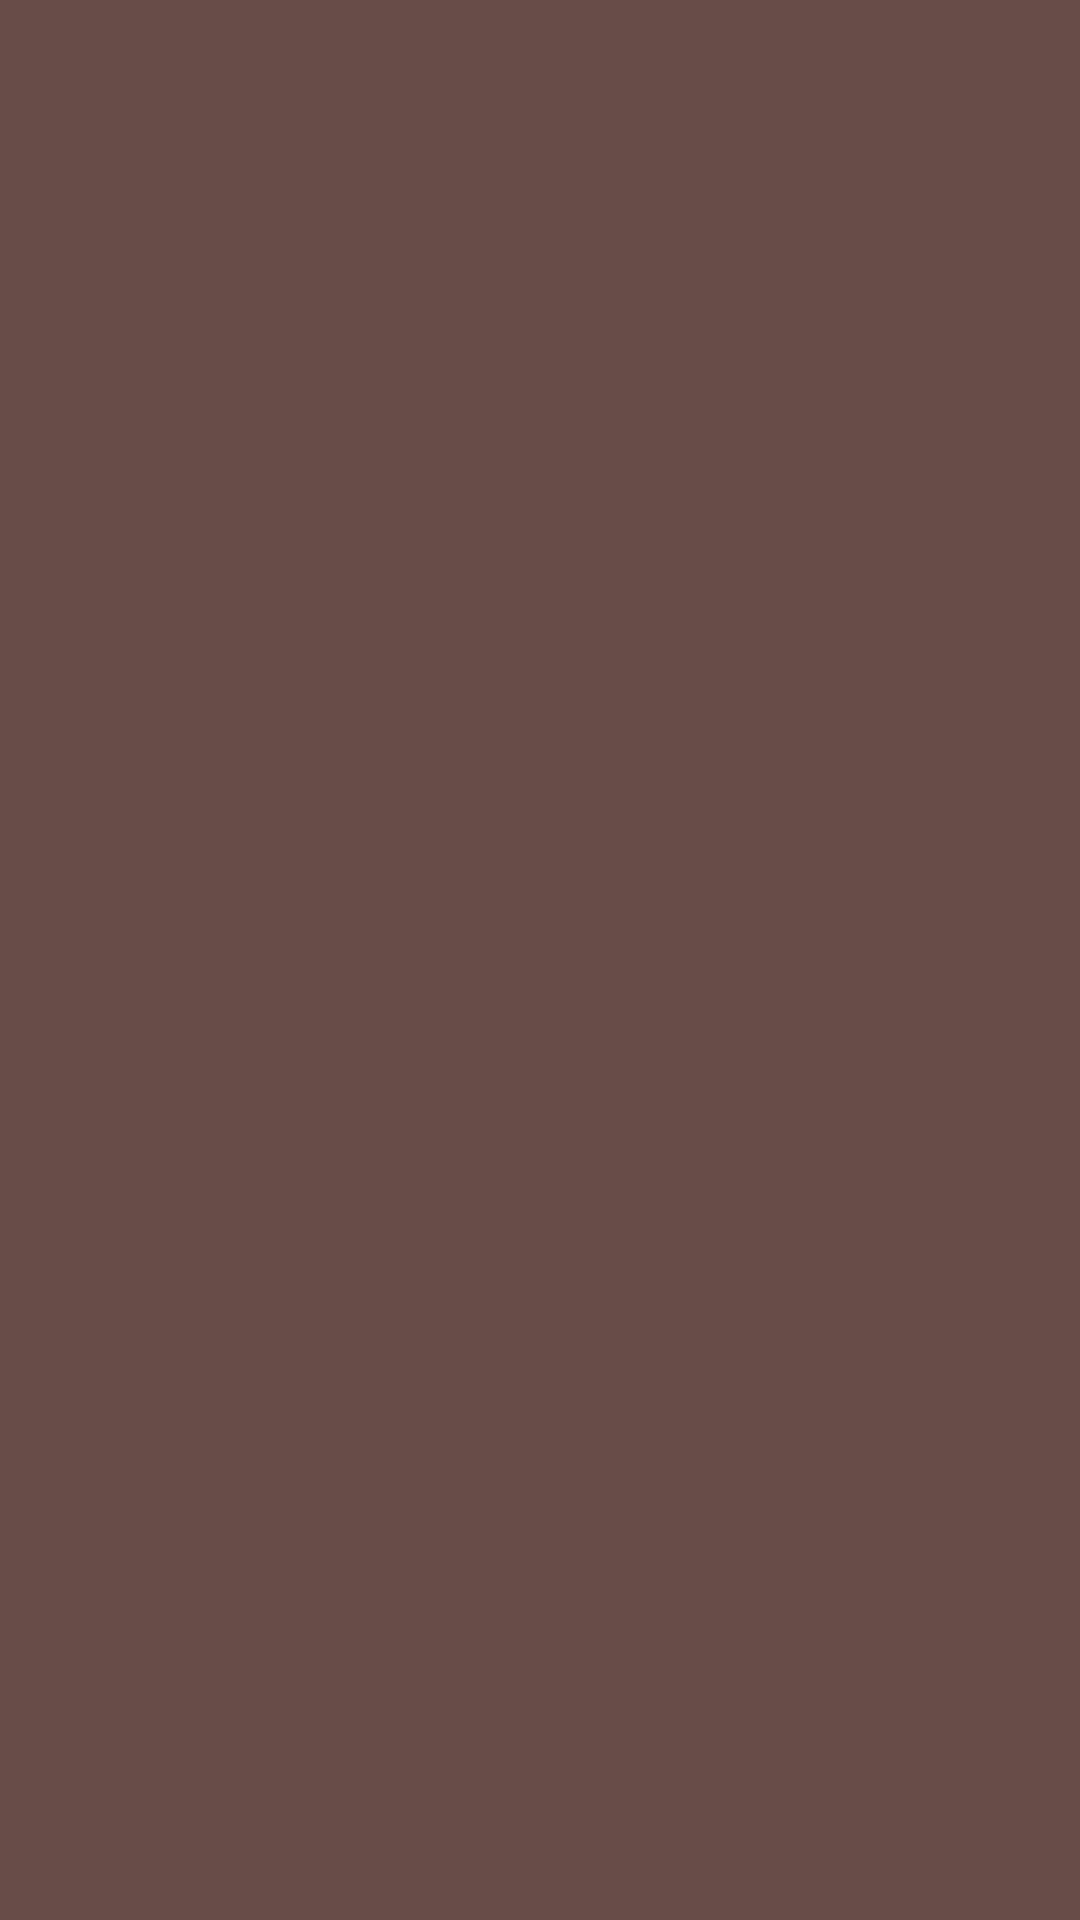 1080x1920 Medium Taupe Solid Color Background